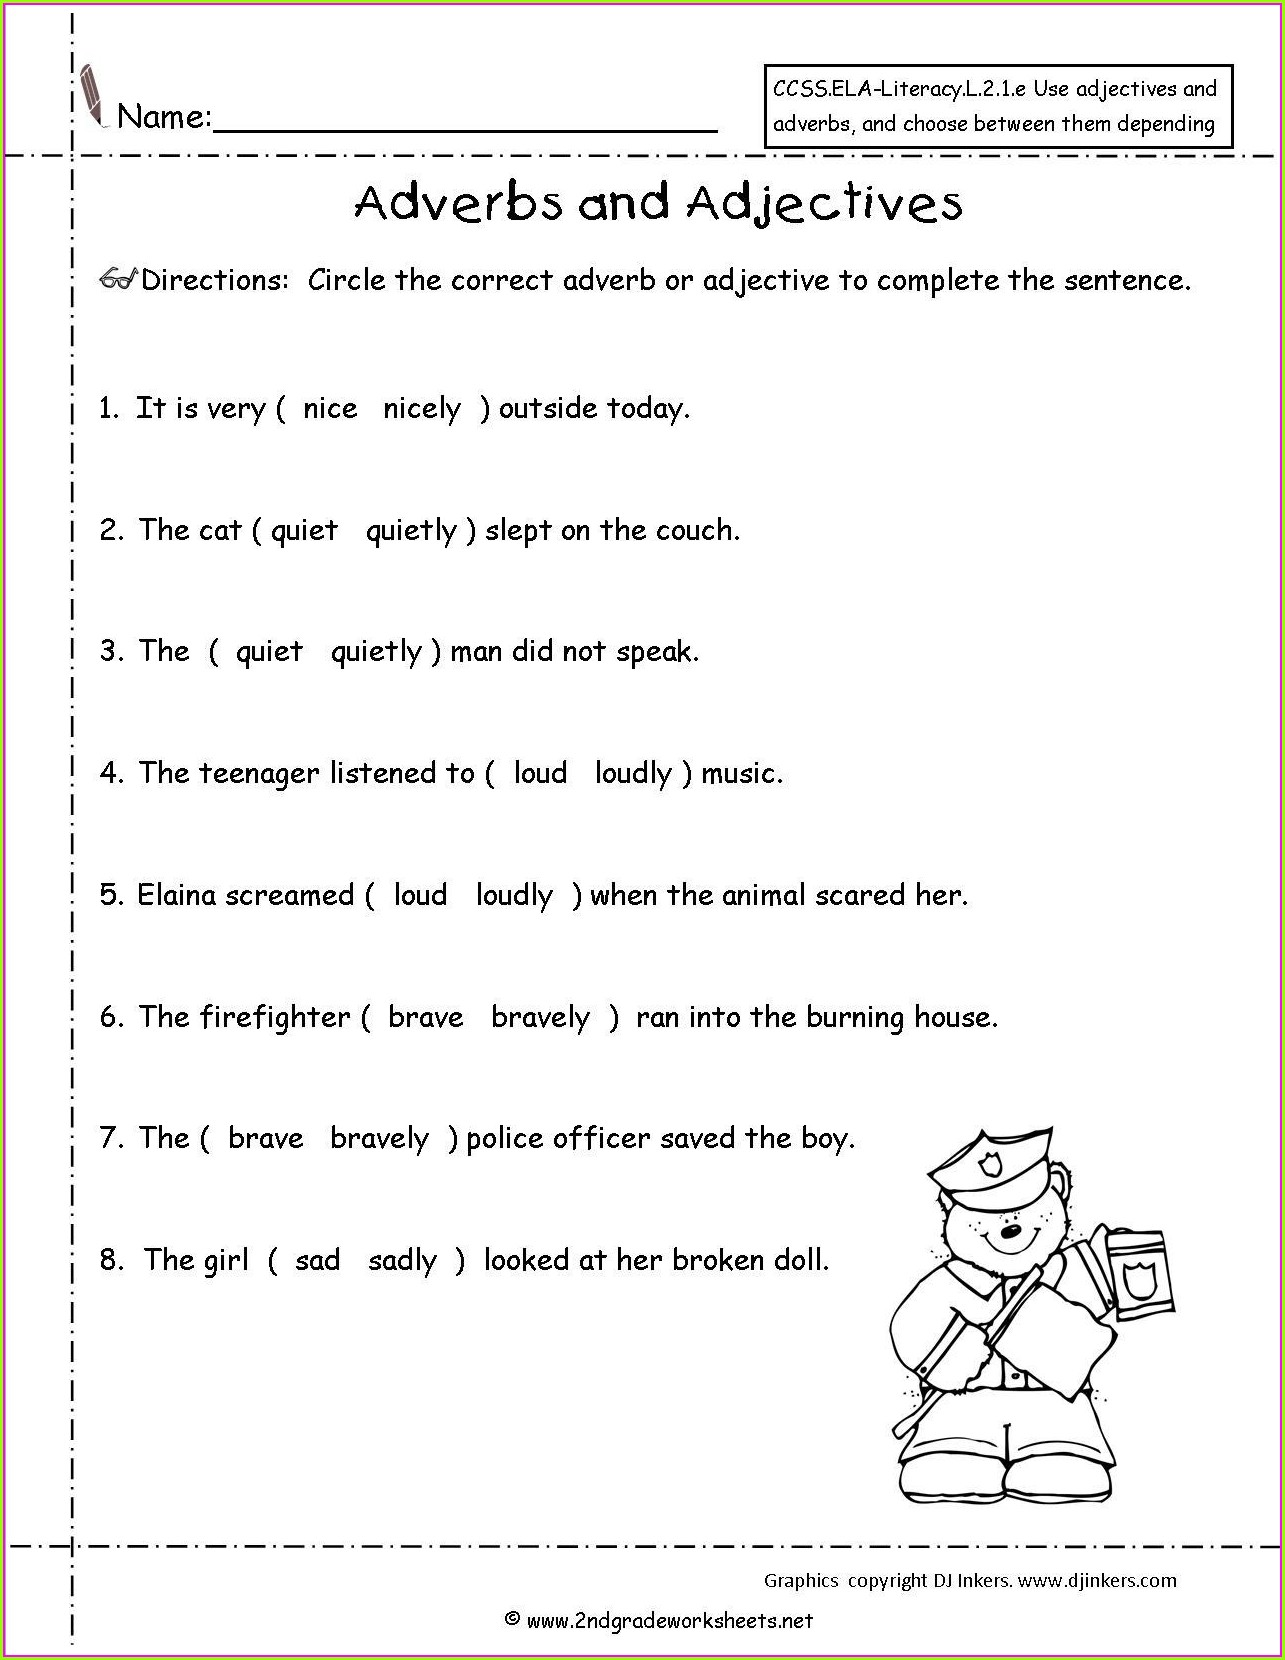 Grade 2 Adverbs Worksheet With Answers